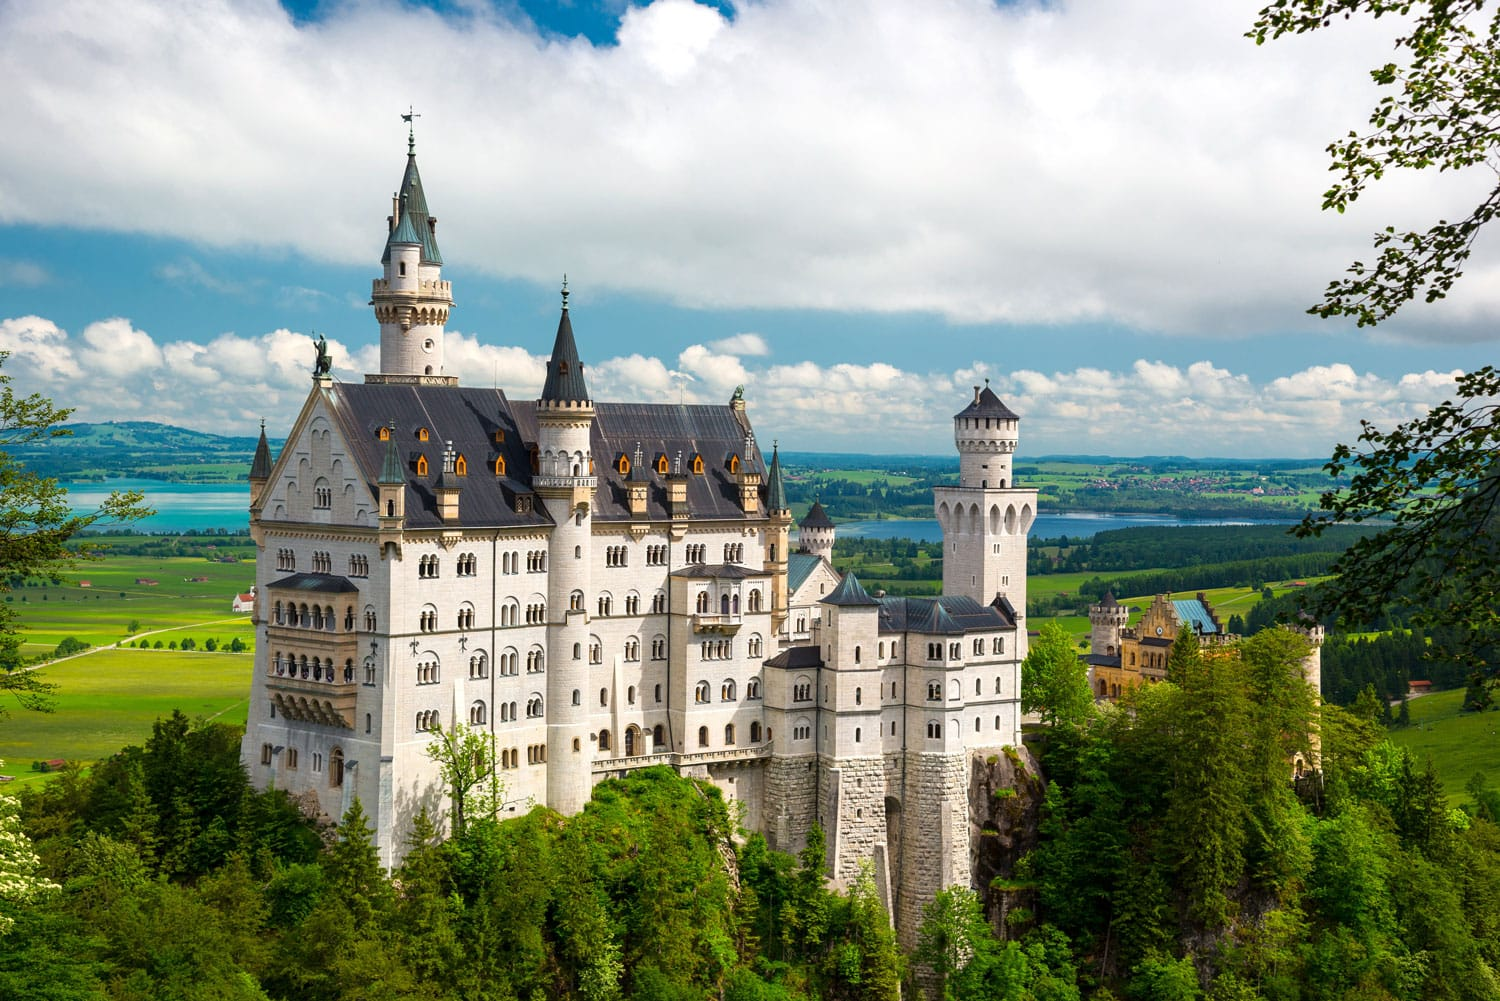 Neuschwanstein Castle on the top of the mountain in Bavaria, Germany